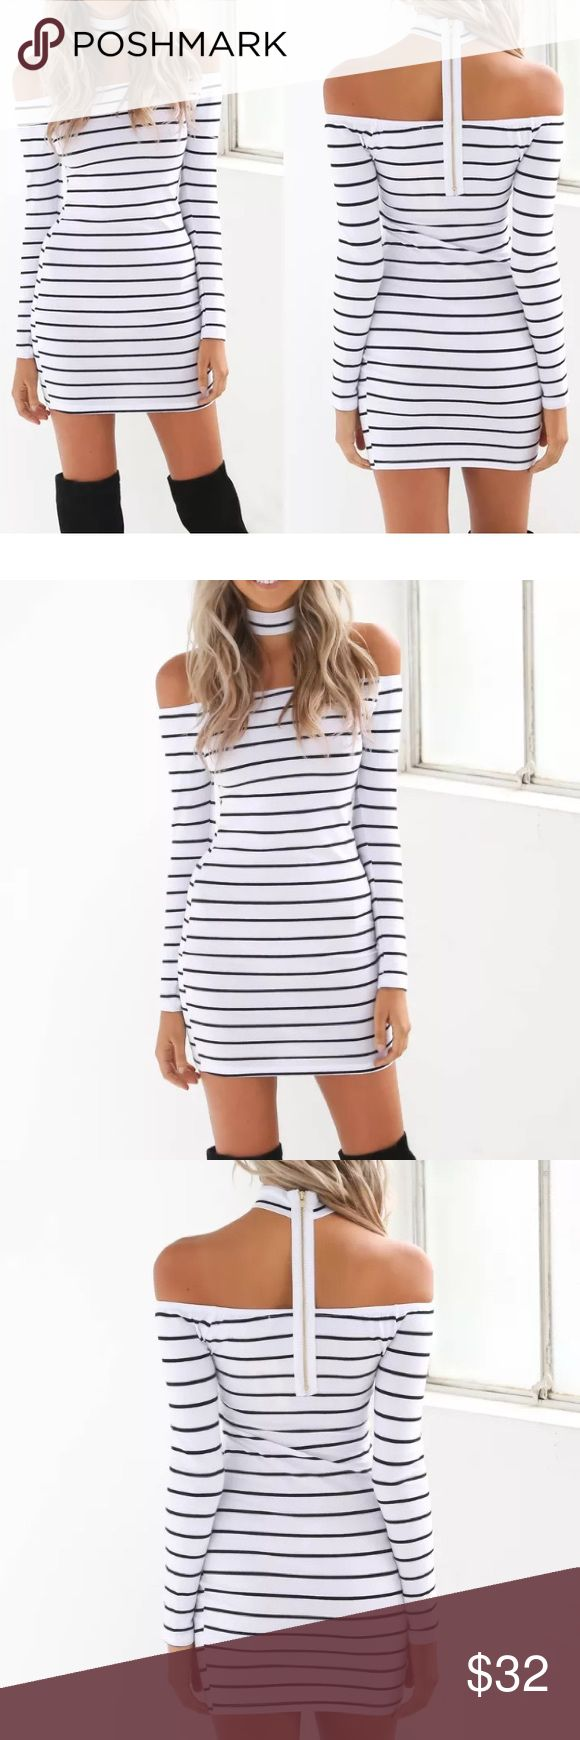 Choker dress A cute dress. White with black stripes. Off the shoulder, with a choker neck. A zip up back. Long sleeves. Made from cotton and spandex. Has a nice stretchy build. Sits in the middle of thighs. boutique item Dresses Mini